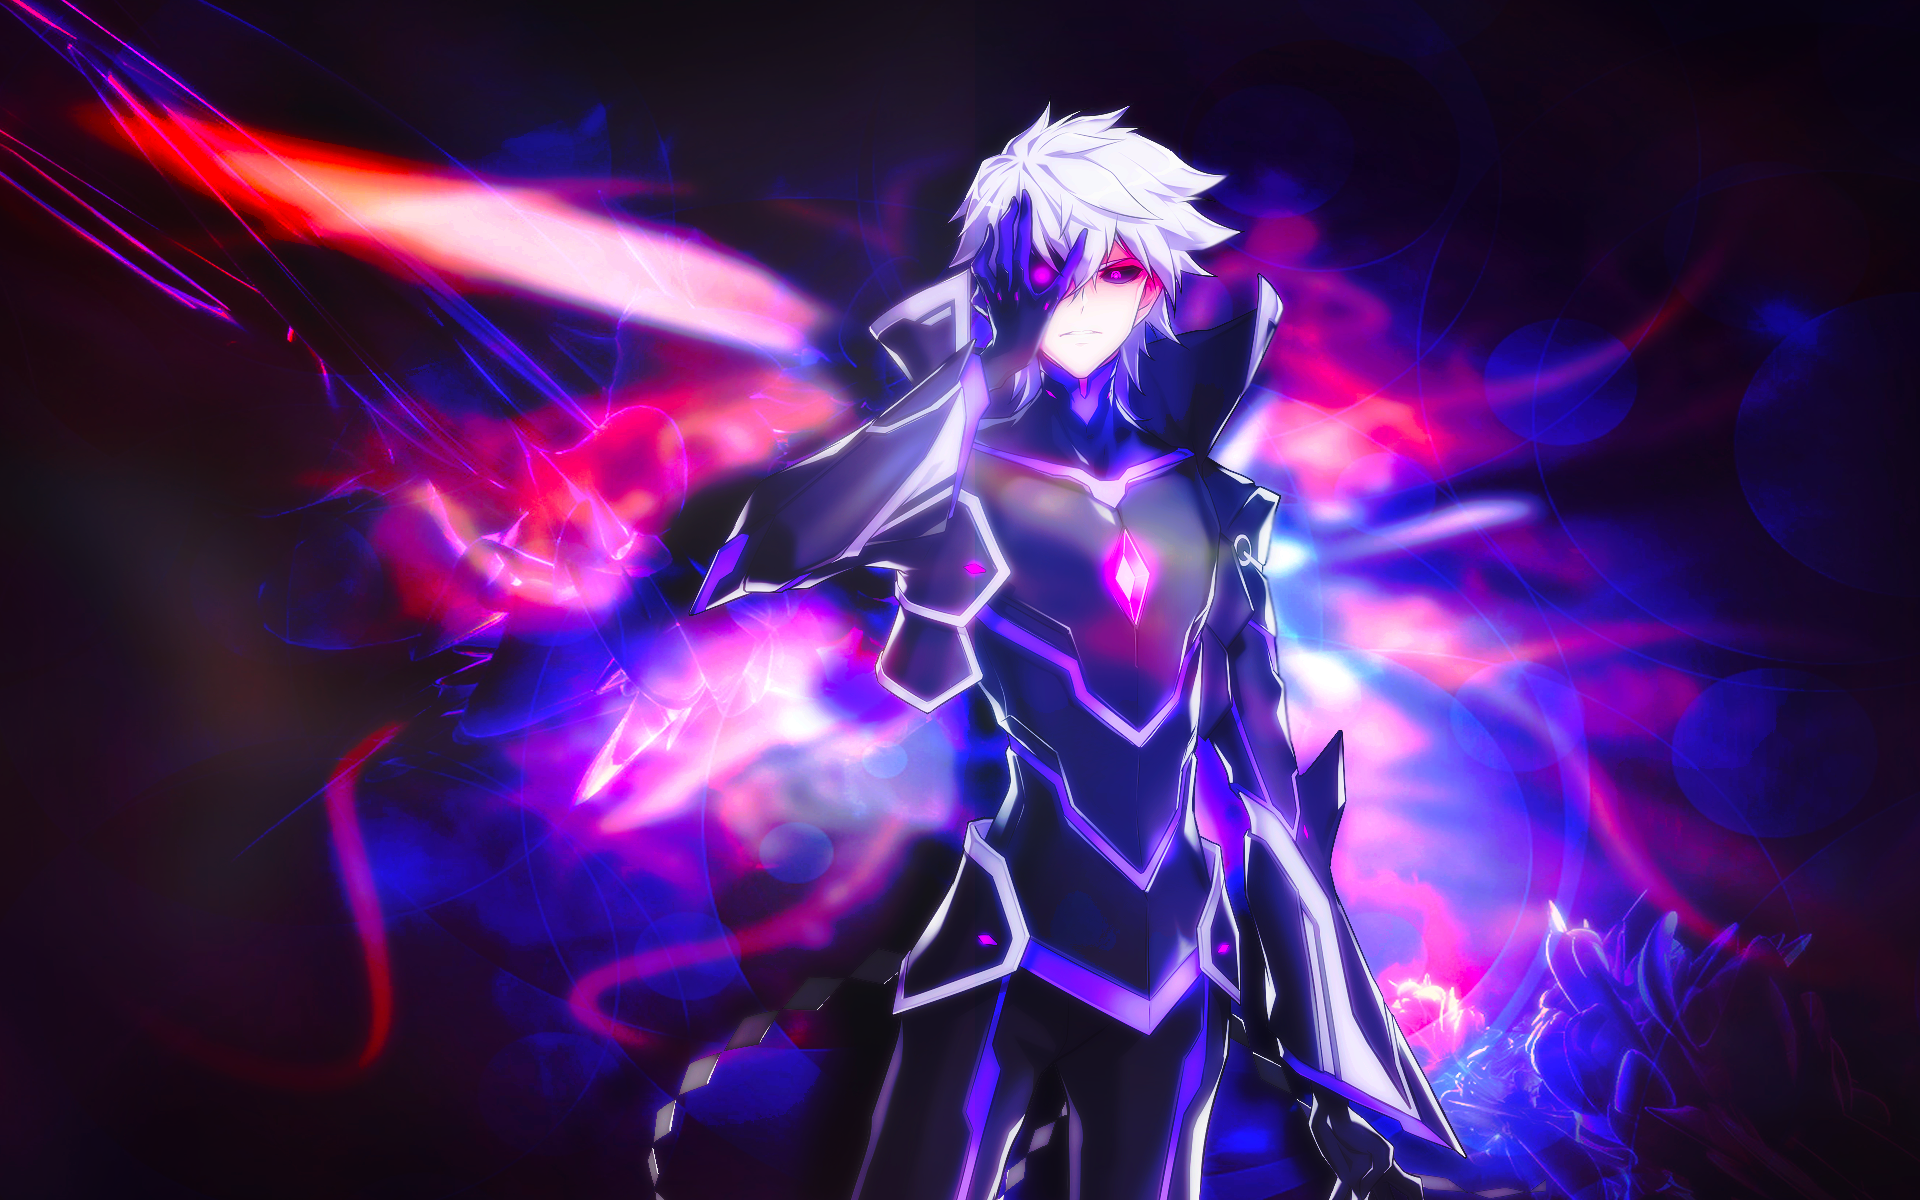 Elsword Add HD Wallpaper  Background Image  1920x1200  ID:645478  Wallpaper Abyss